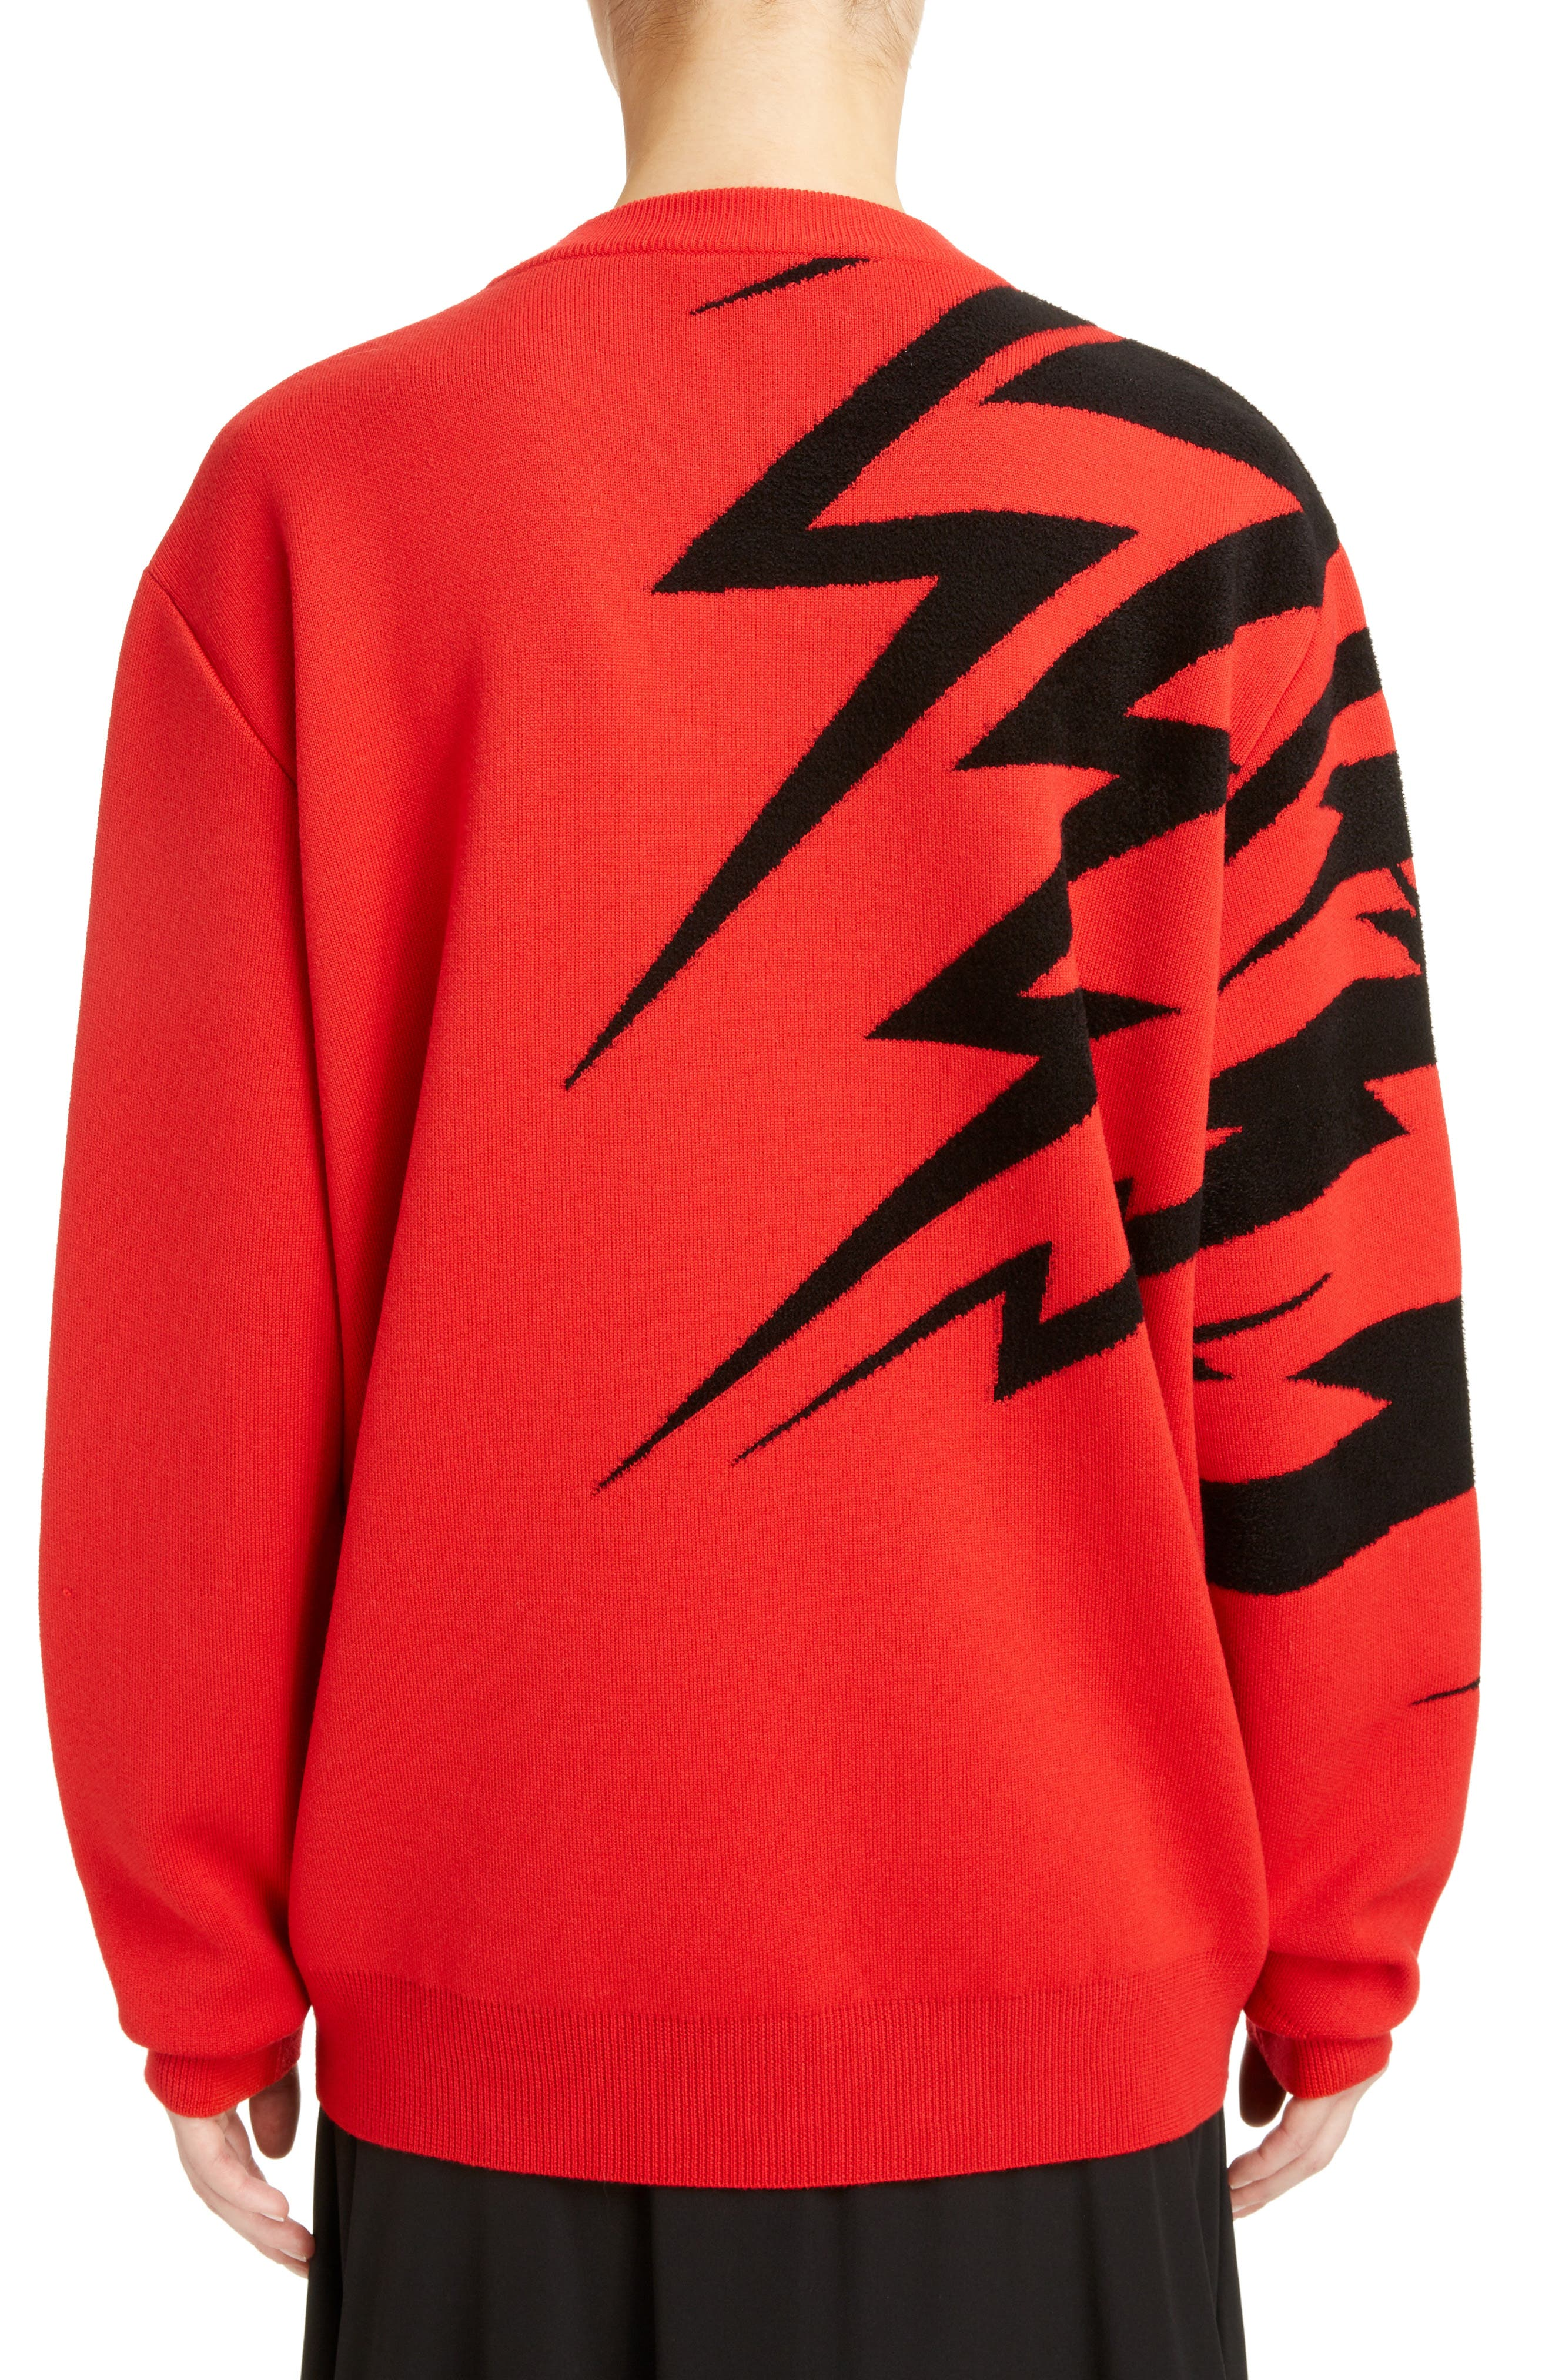 GIVENCHY,                             Tiger Wool Jacquard Sweater,                             Alternate thumbnail 2, color,                             606